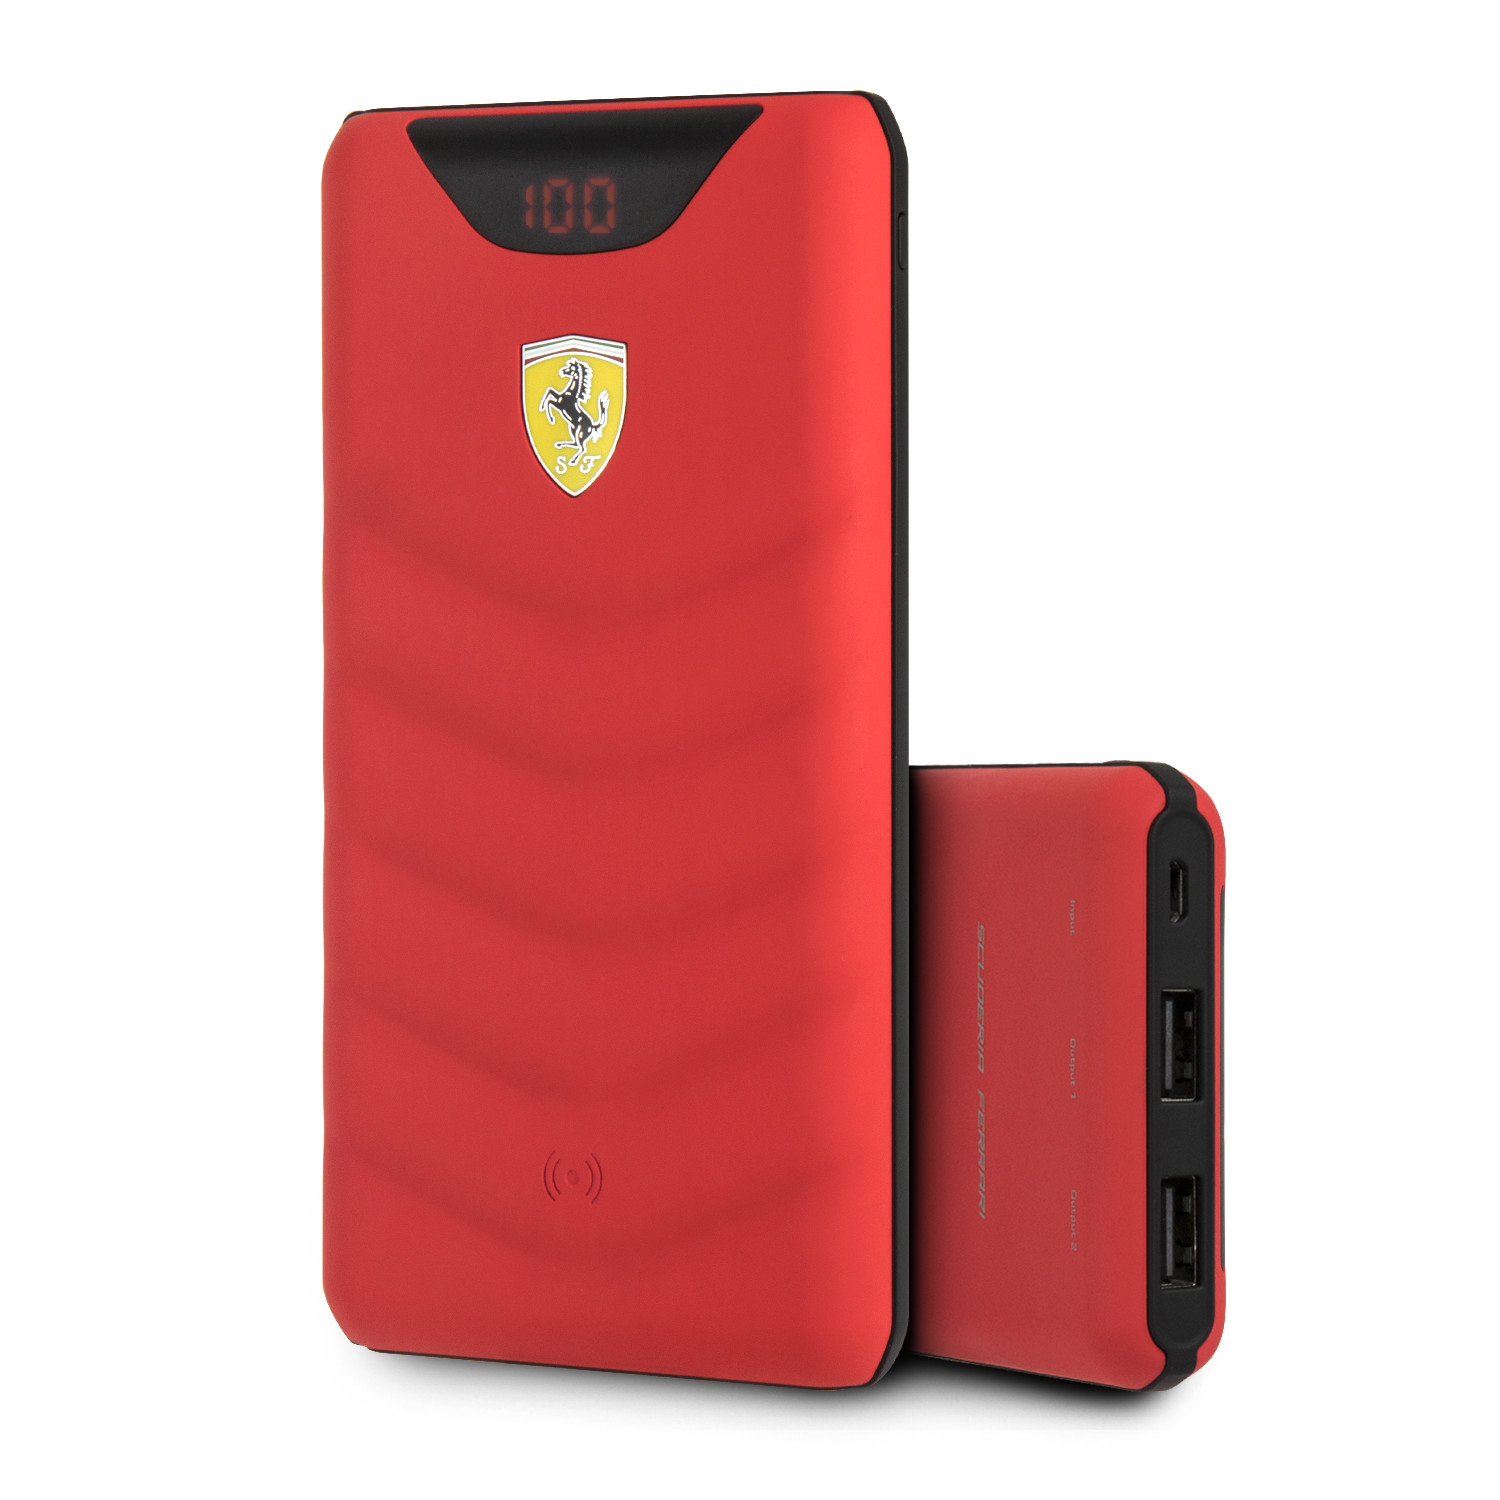 On Track Wireless Portable Charger 10 000mah Black Ferrari By Cg Mobile Touch Of Modern